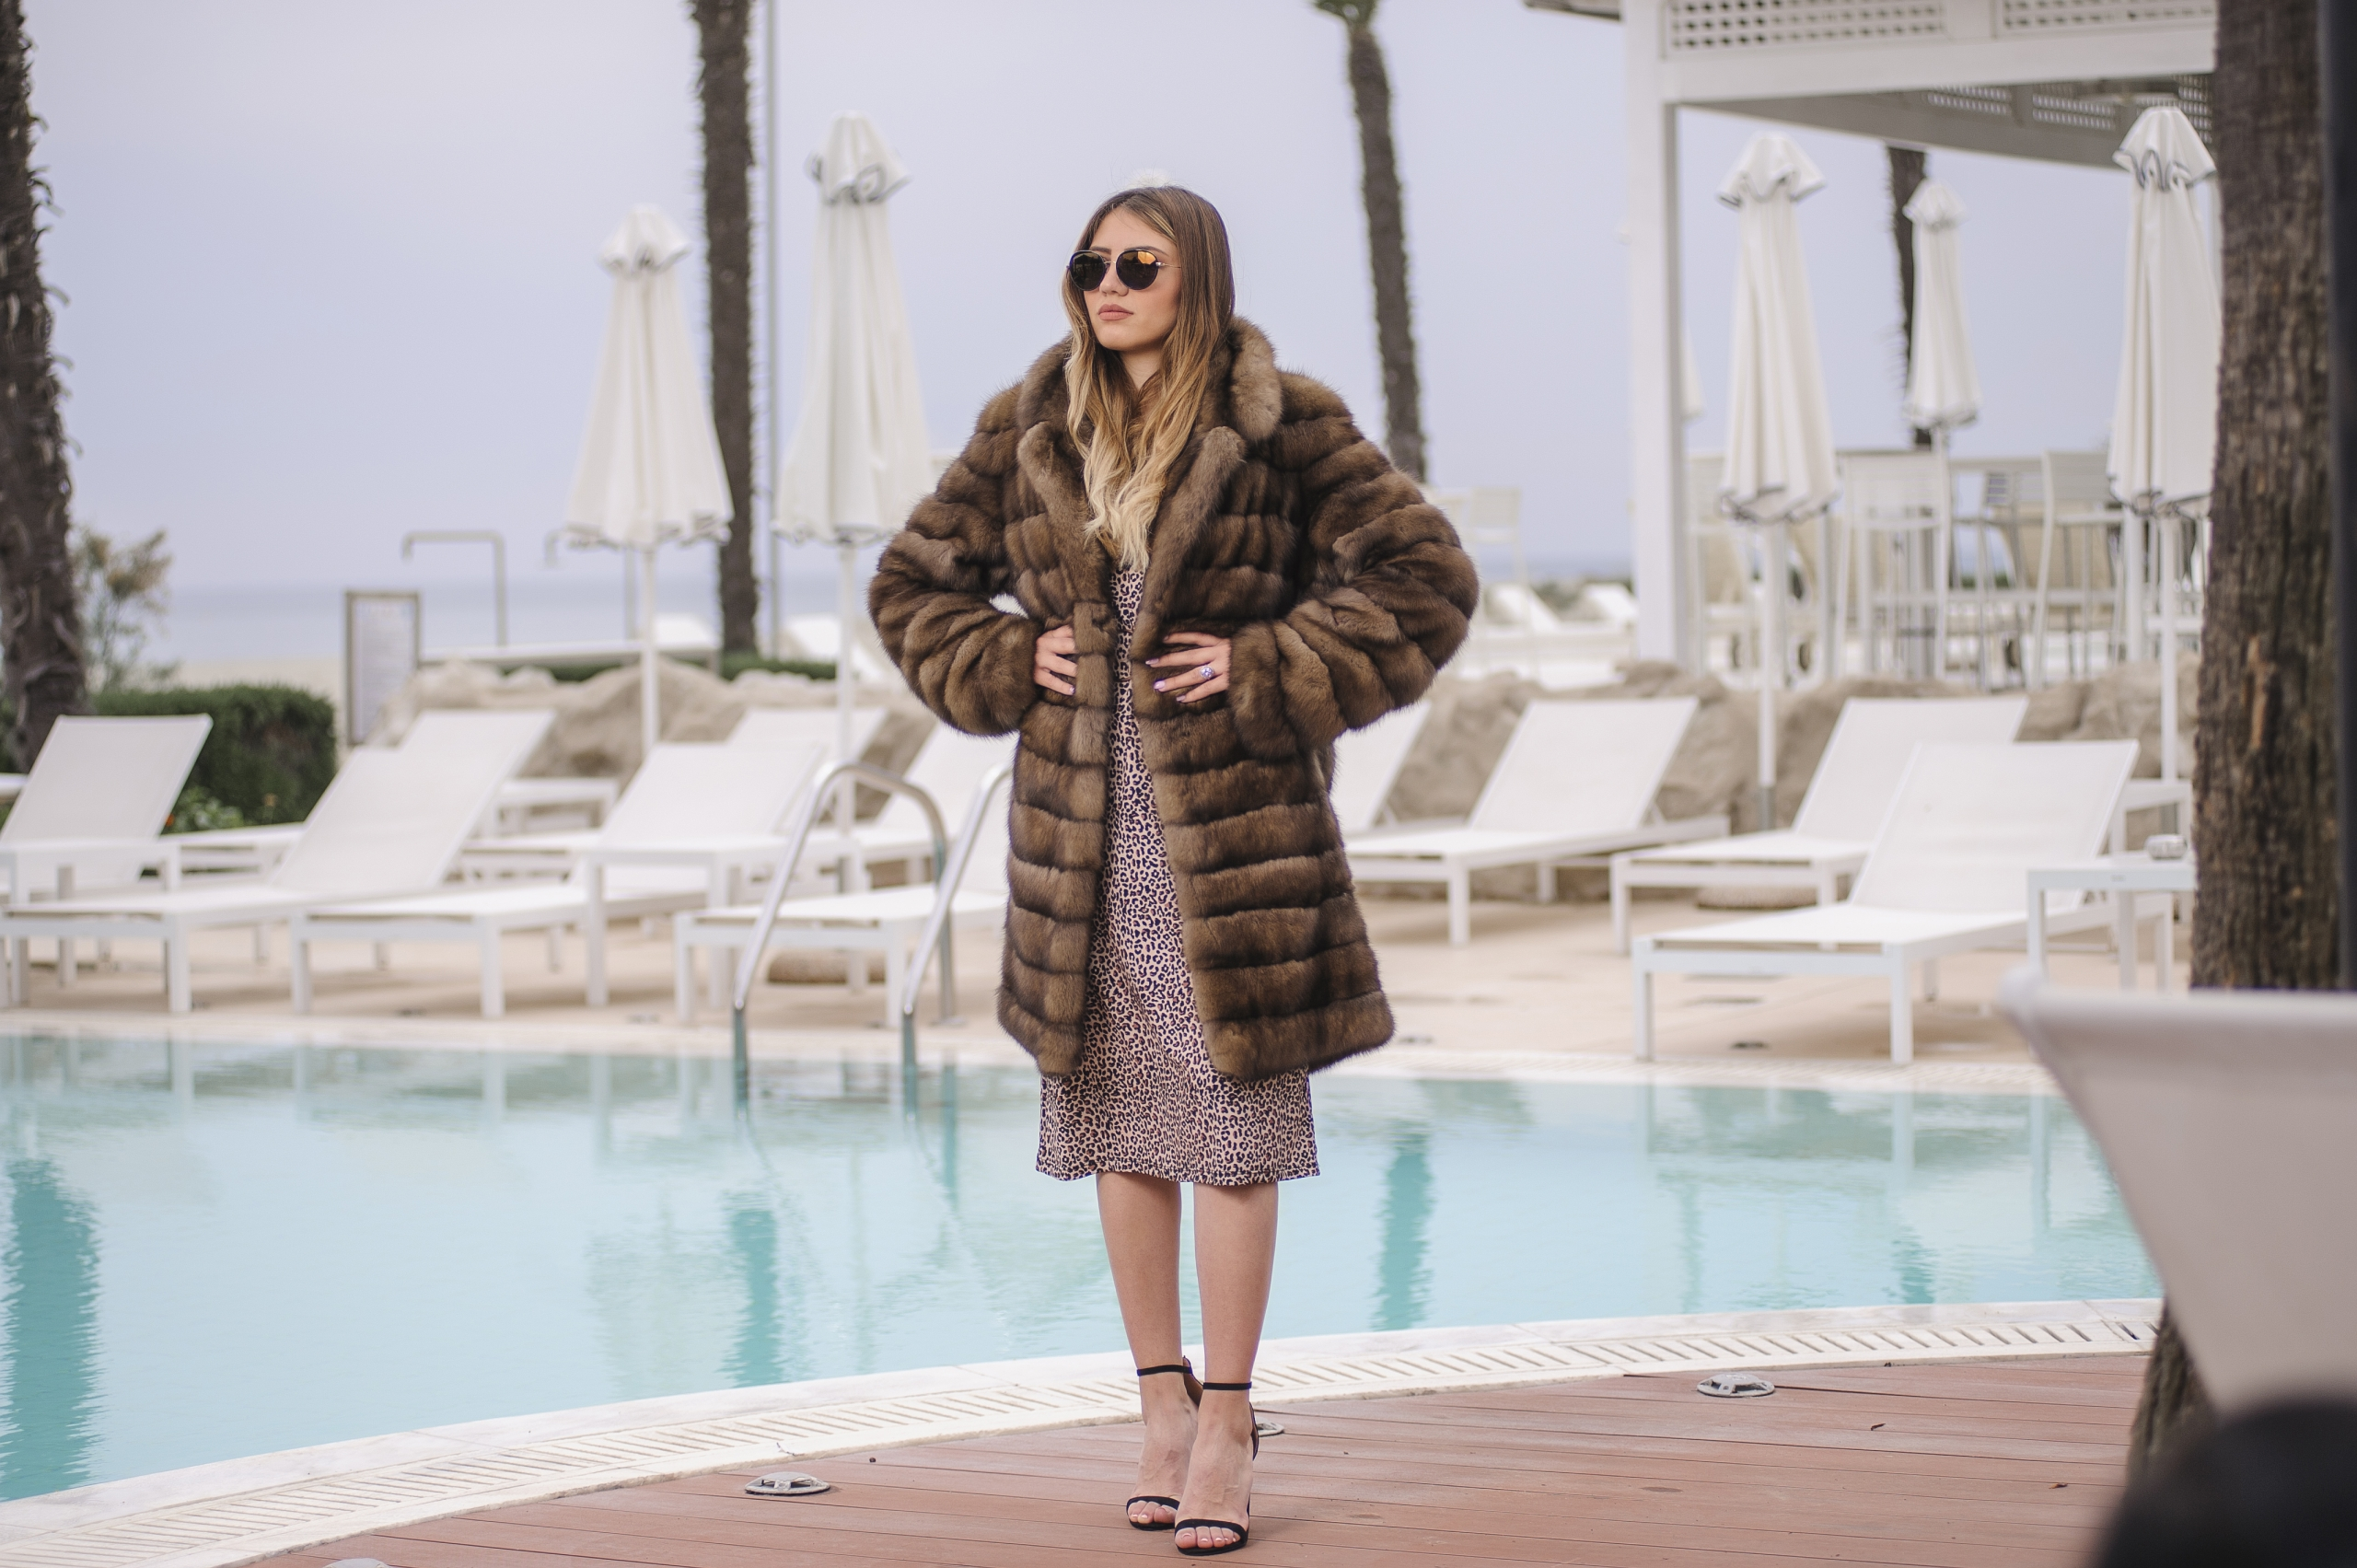 The Fur Fashion Collection